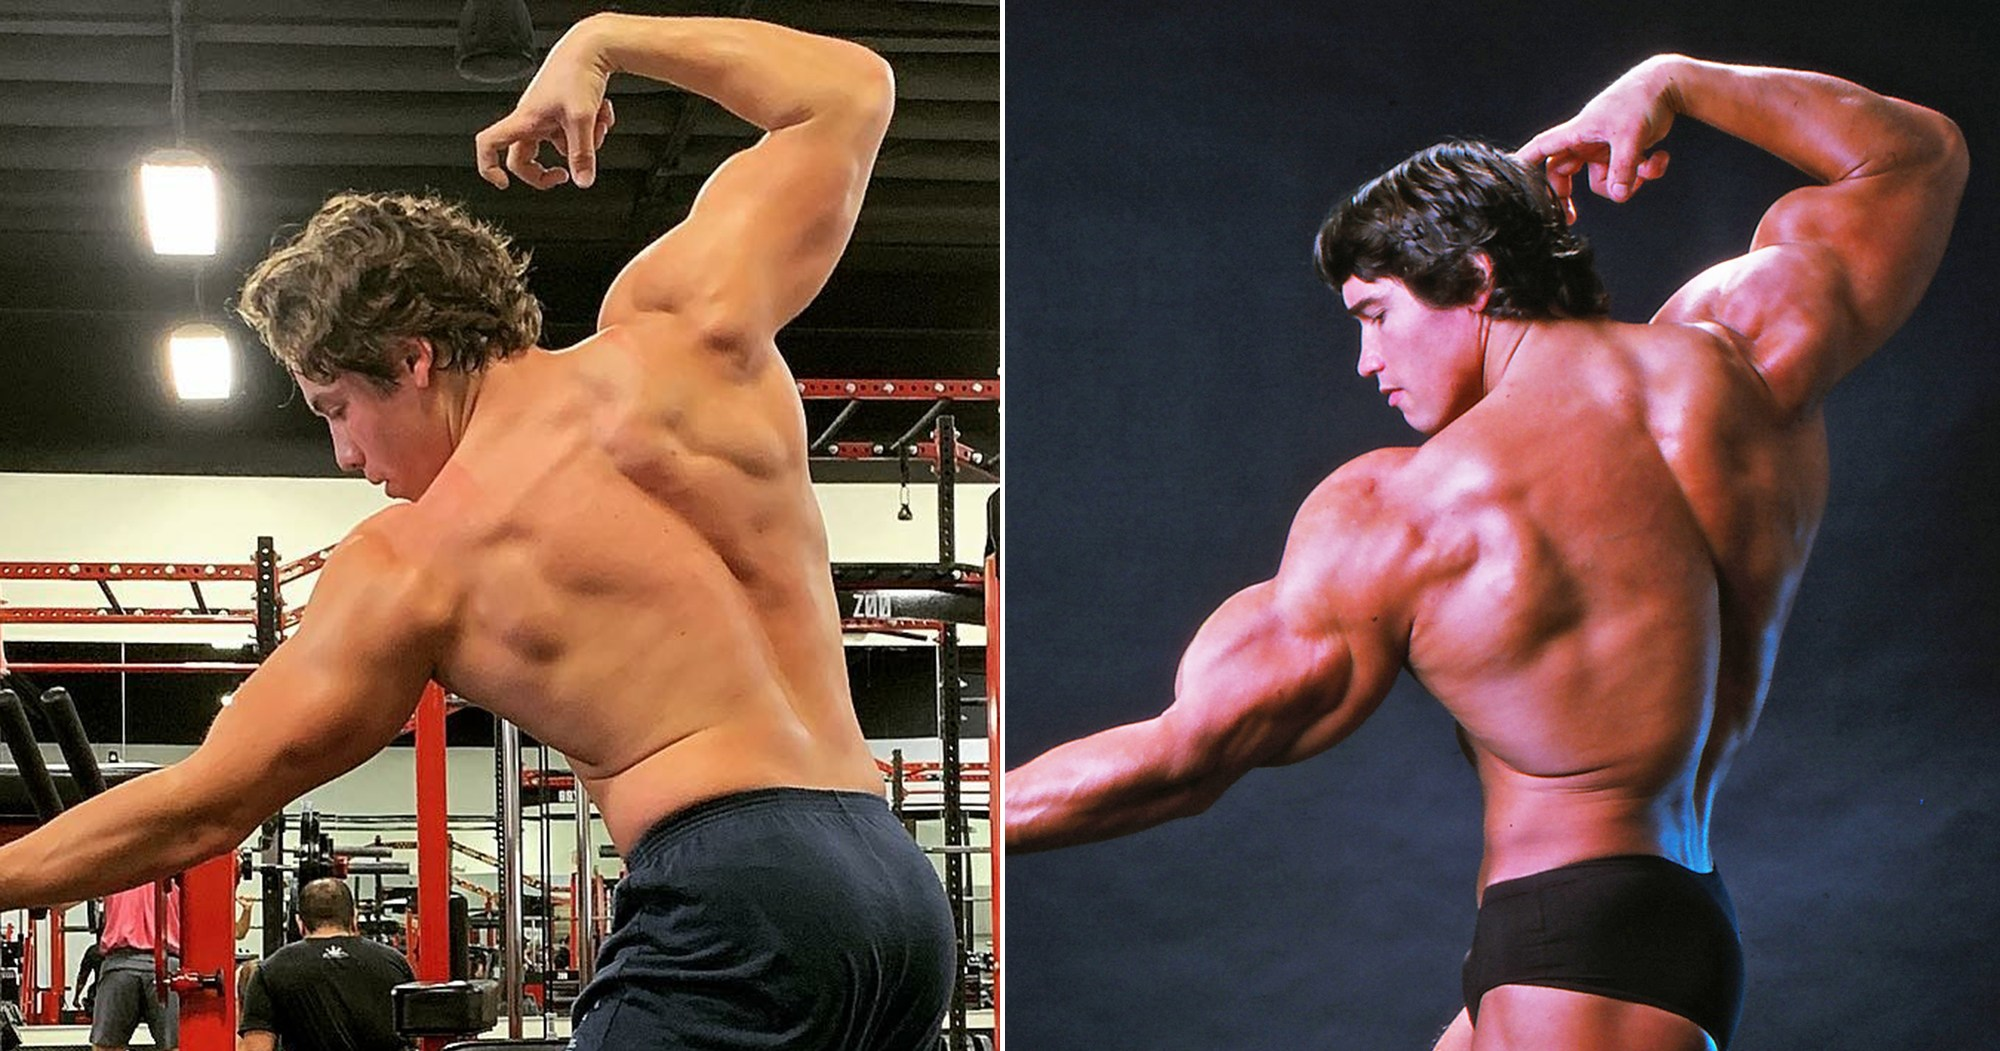 Arnold Schwarzenegger's Son Joseph Baena Recreates Dad's Iconic Bodybuilding Pose: See the Pic!